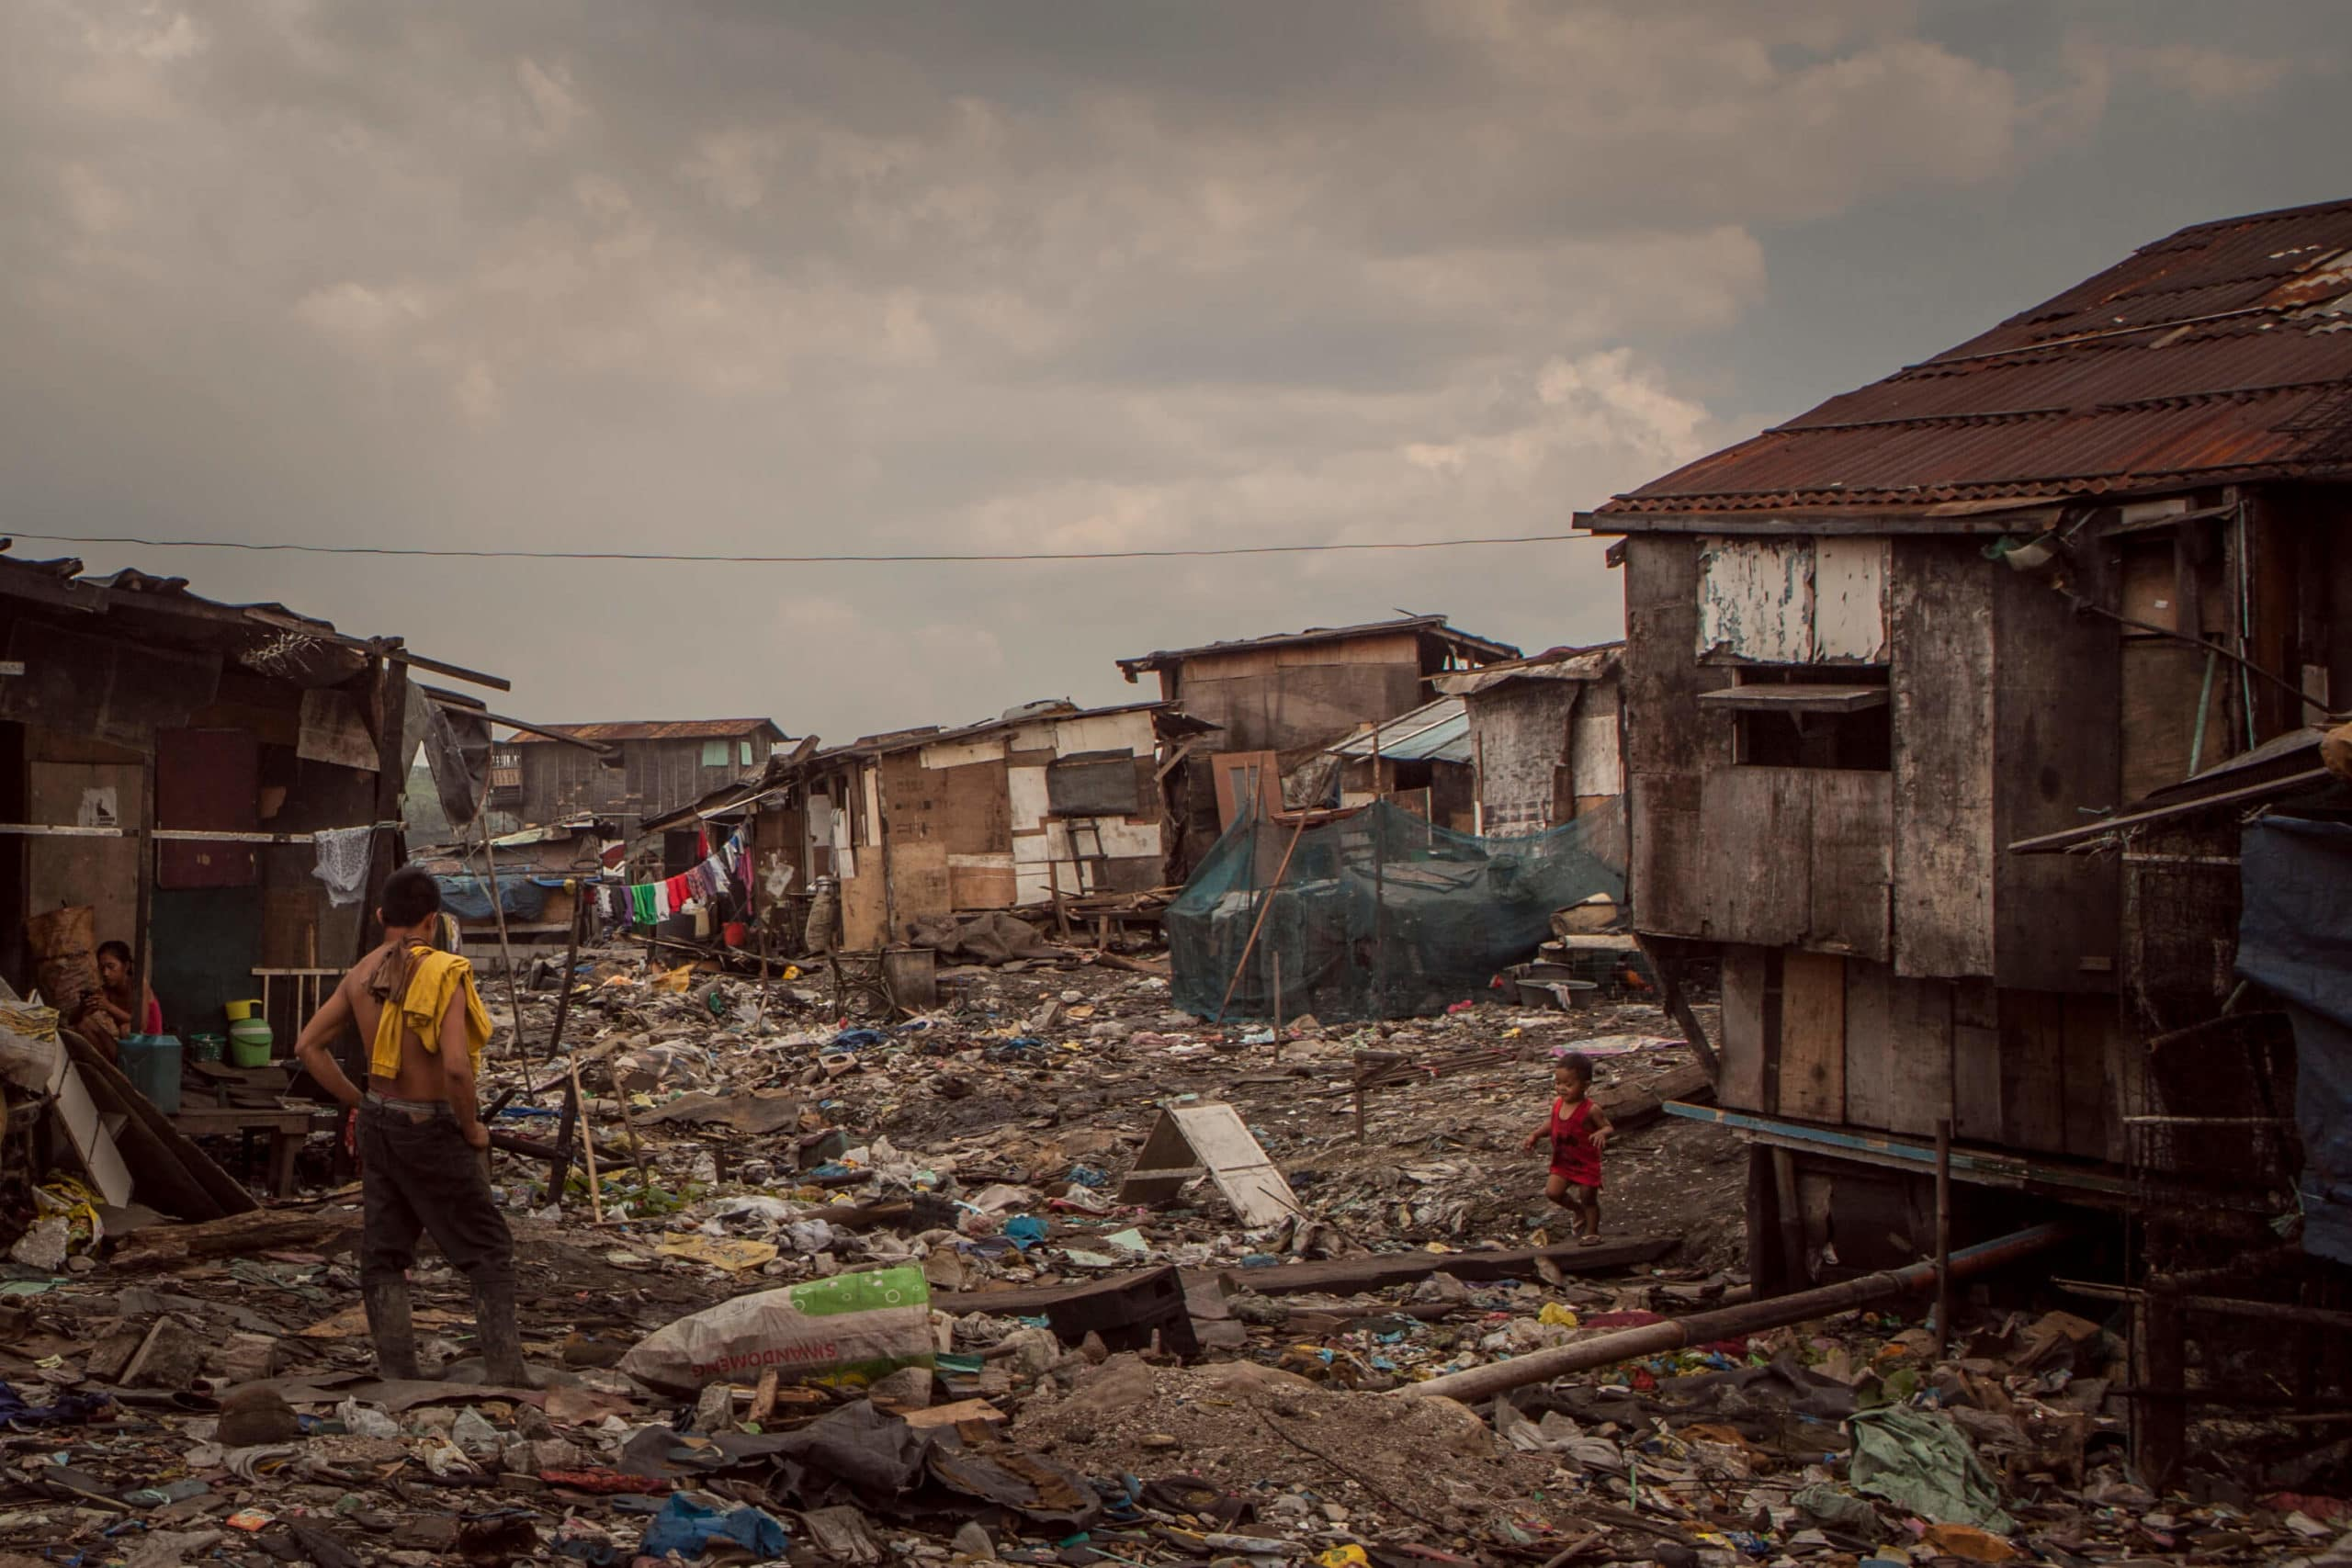 a photo of a slum in an east asian country. Trash is strewn everythwere, few people stand around.